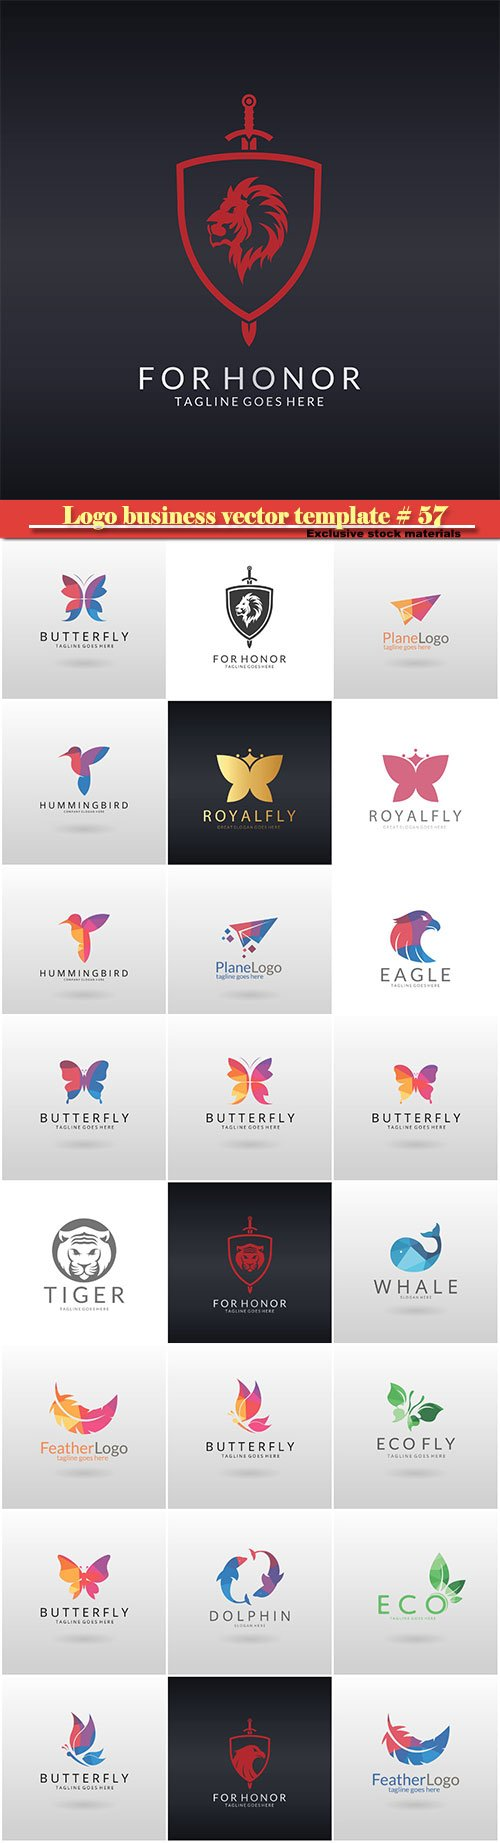 Logo business vector illustration template # 57